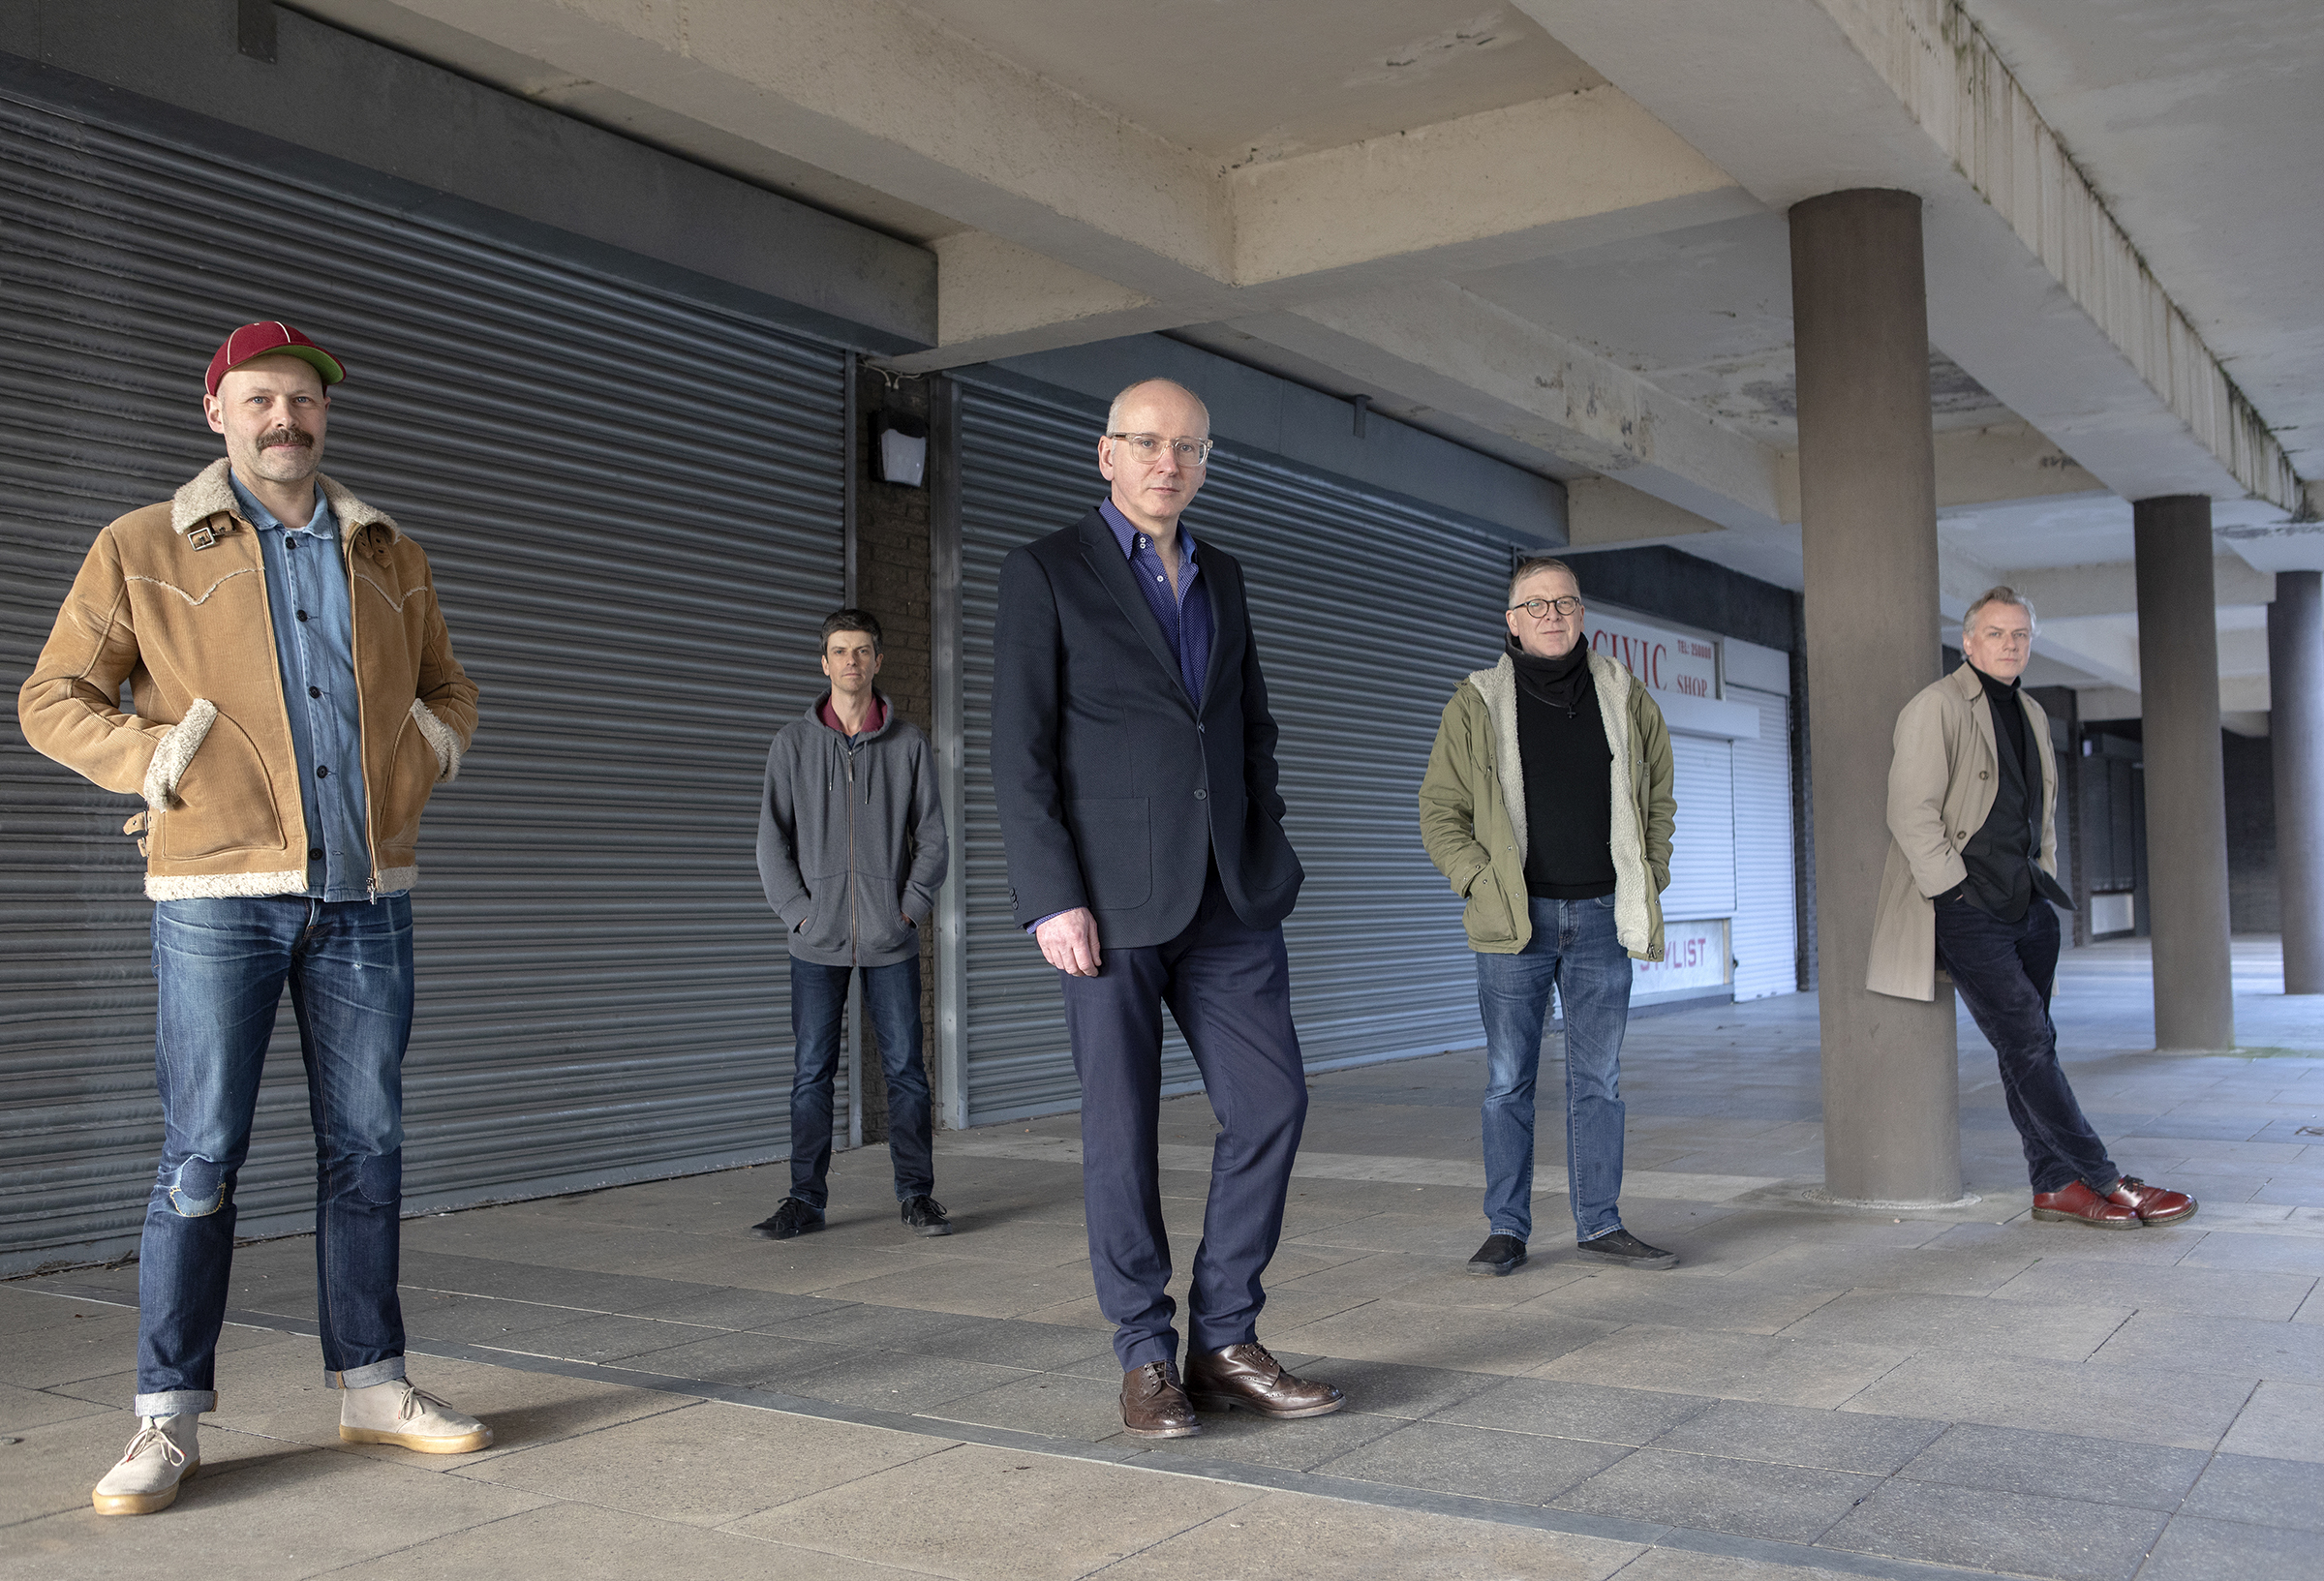 TEENAGE FANCLUB share new video for 'In Our Dreams' from new album 'Endless Arcade' out 30th April